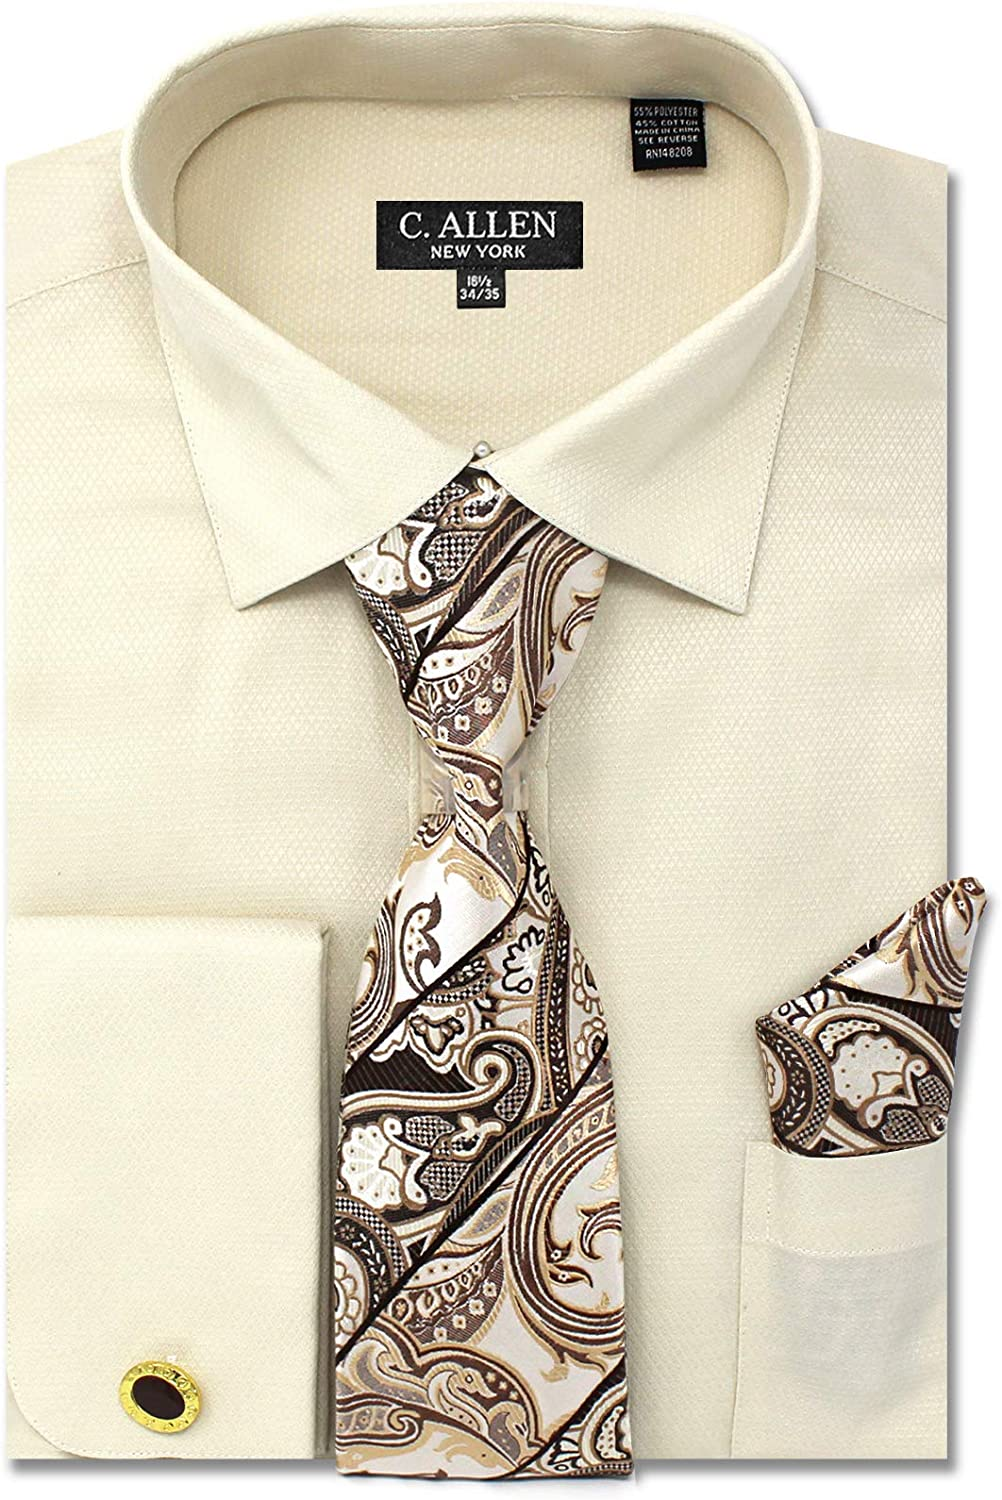 Men's Solid Micro Pattern Regular Fit French Cuffs Dress Shirts with Tie Hanky Cufflinks Combo